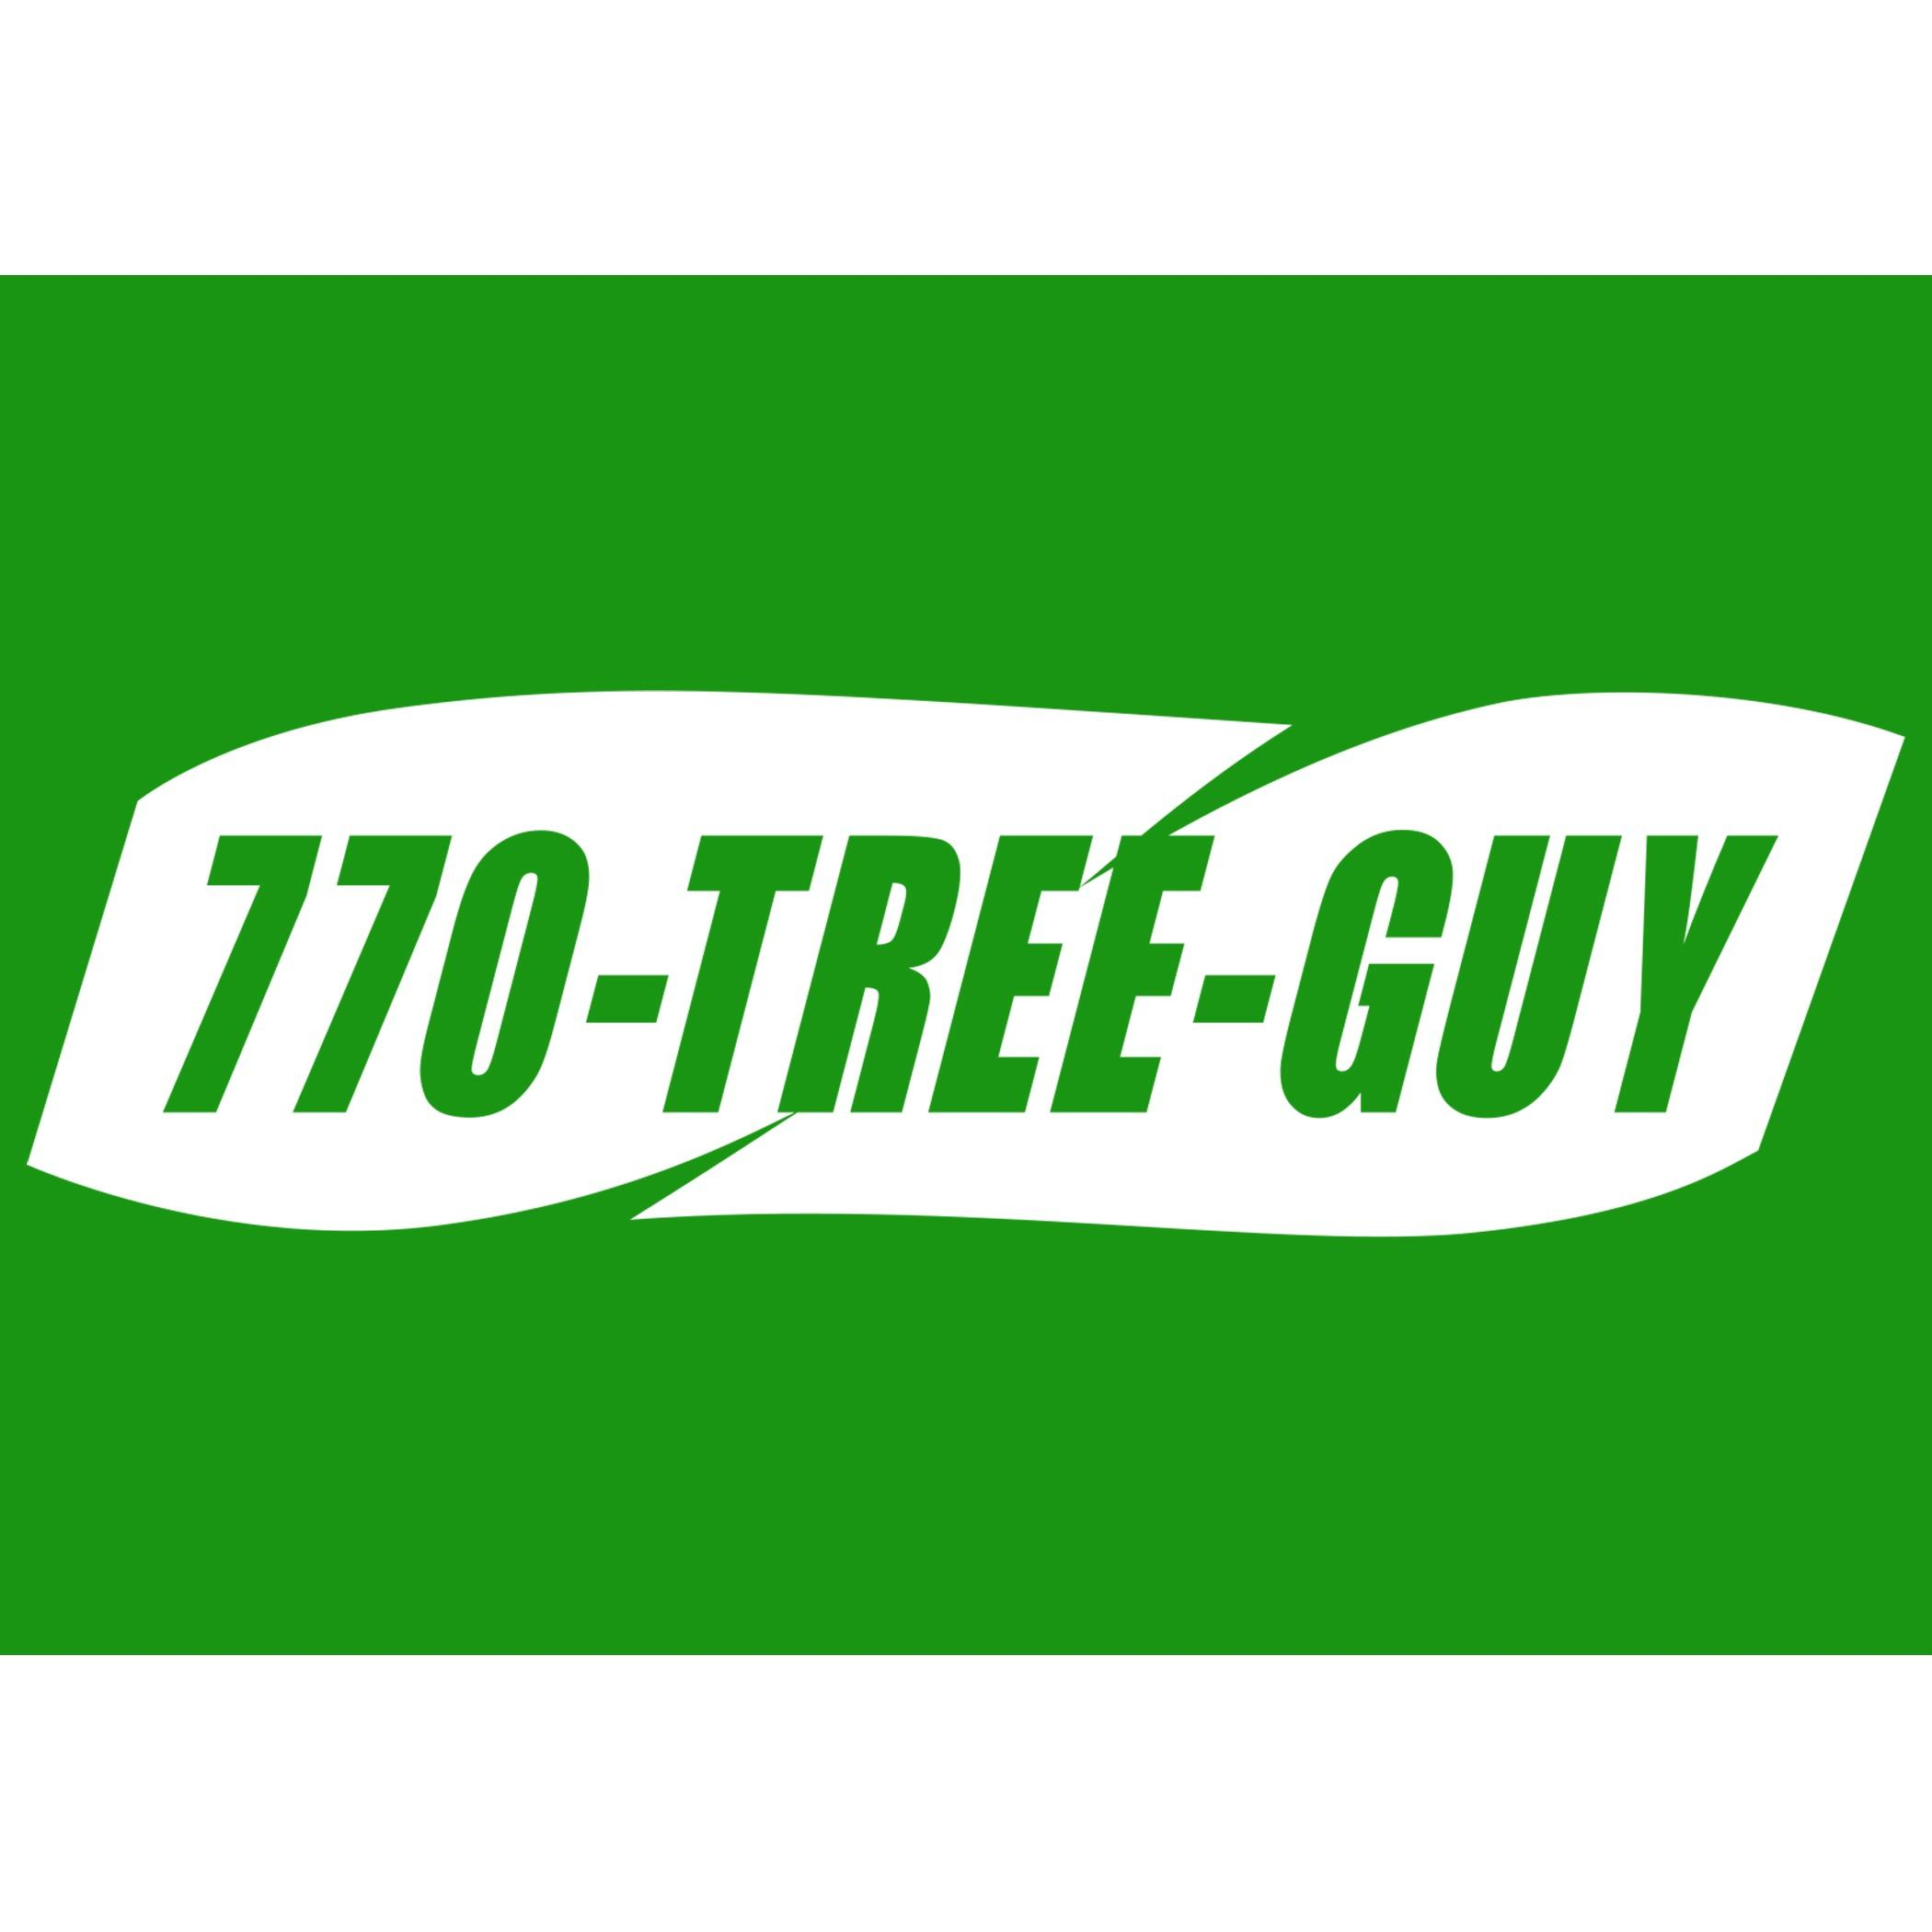 770-Tree-Guy - Fayetteville, GA 30215 - (770)629-8715 | ShowMeLocal.com